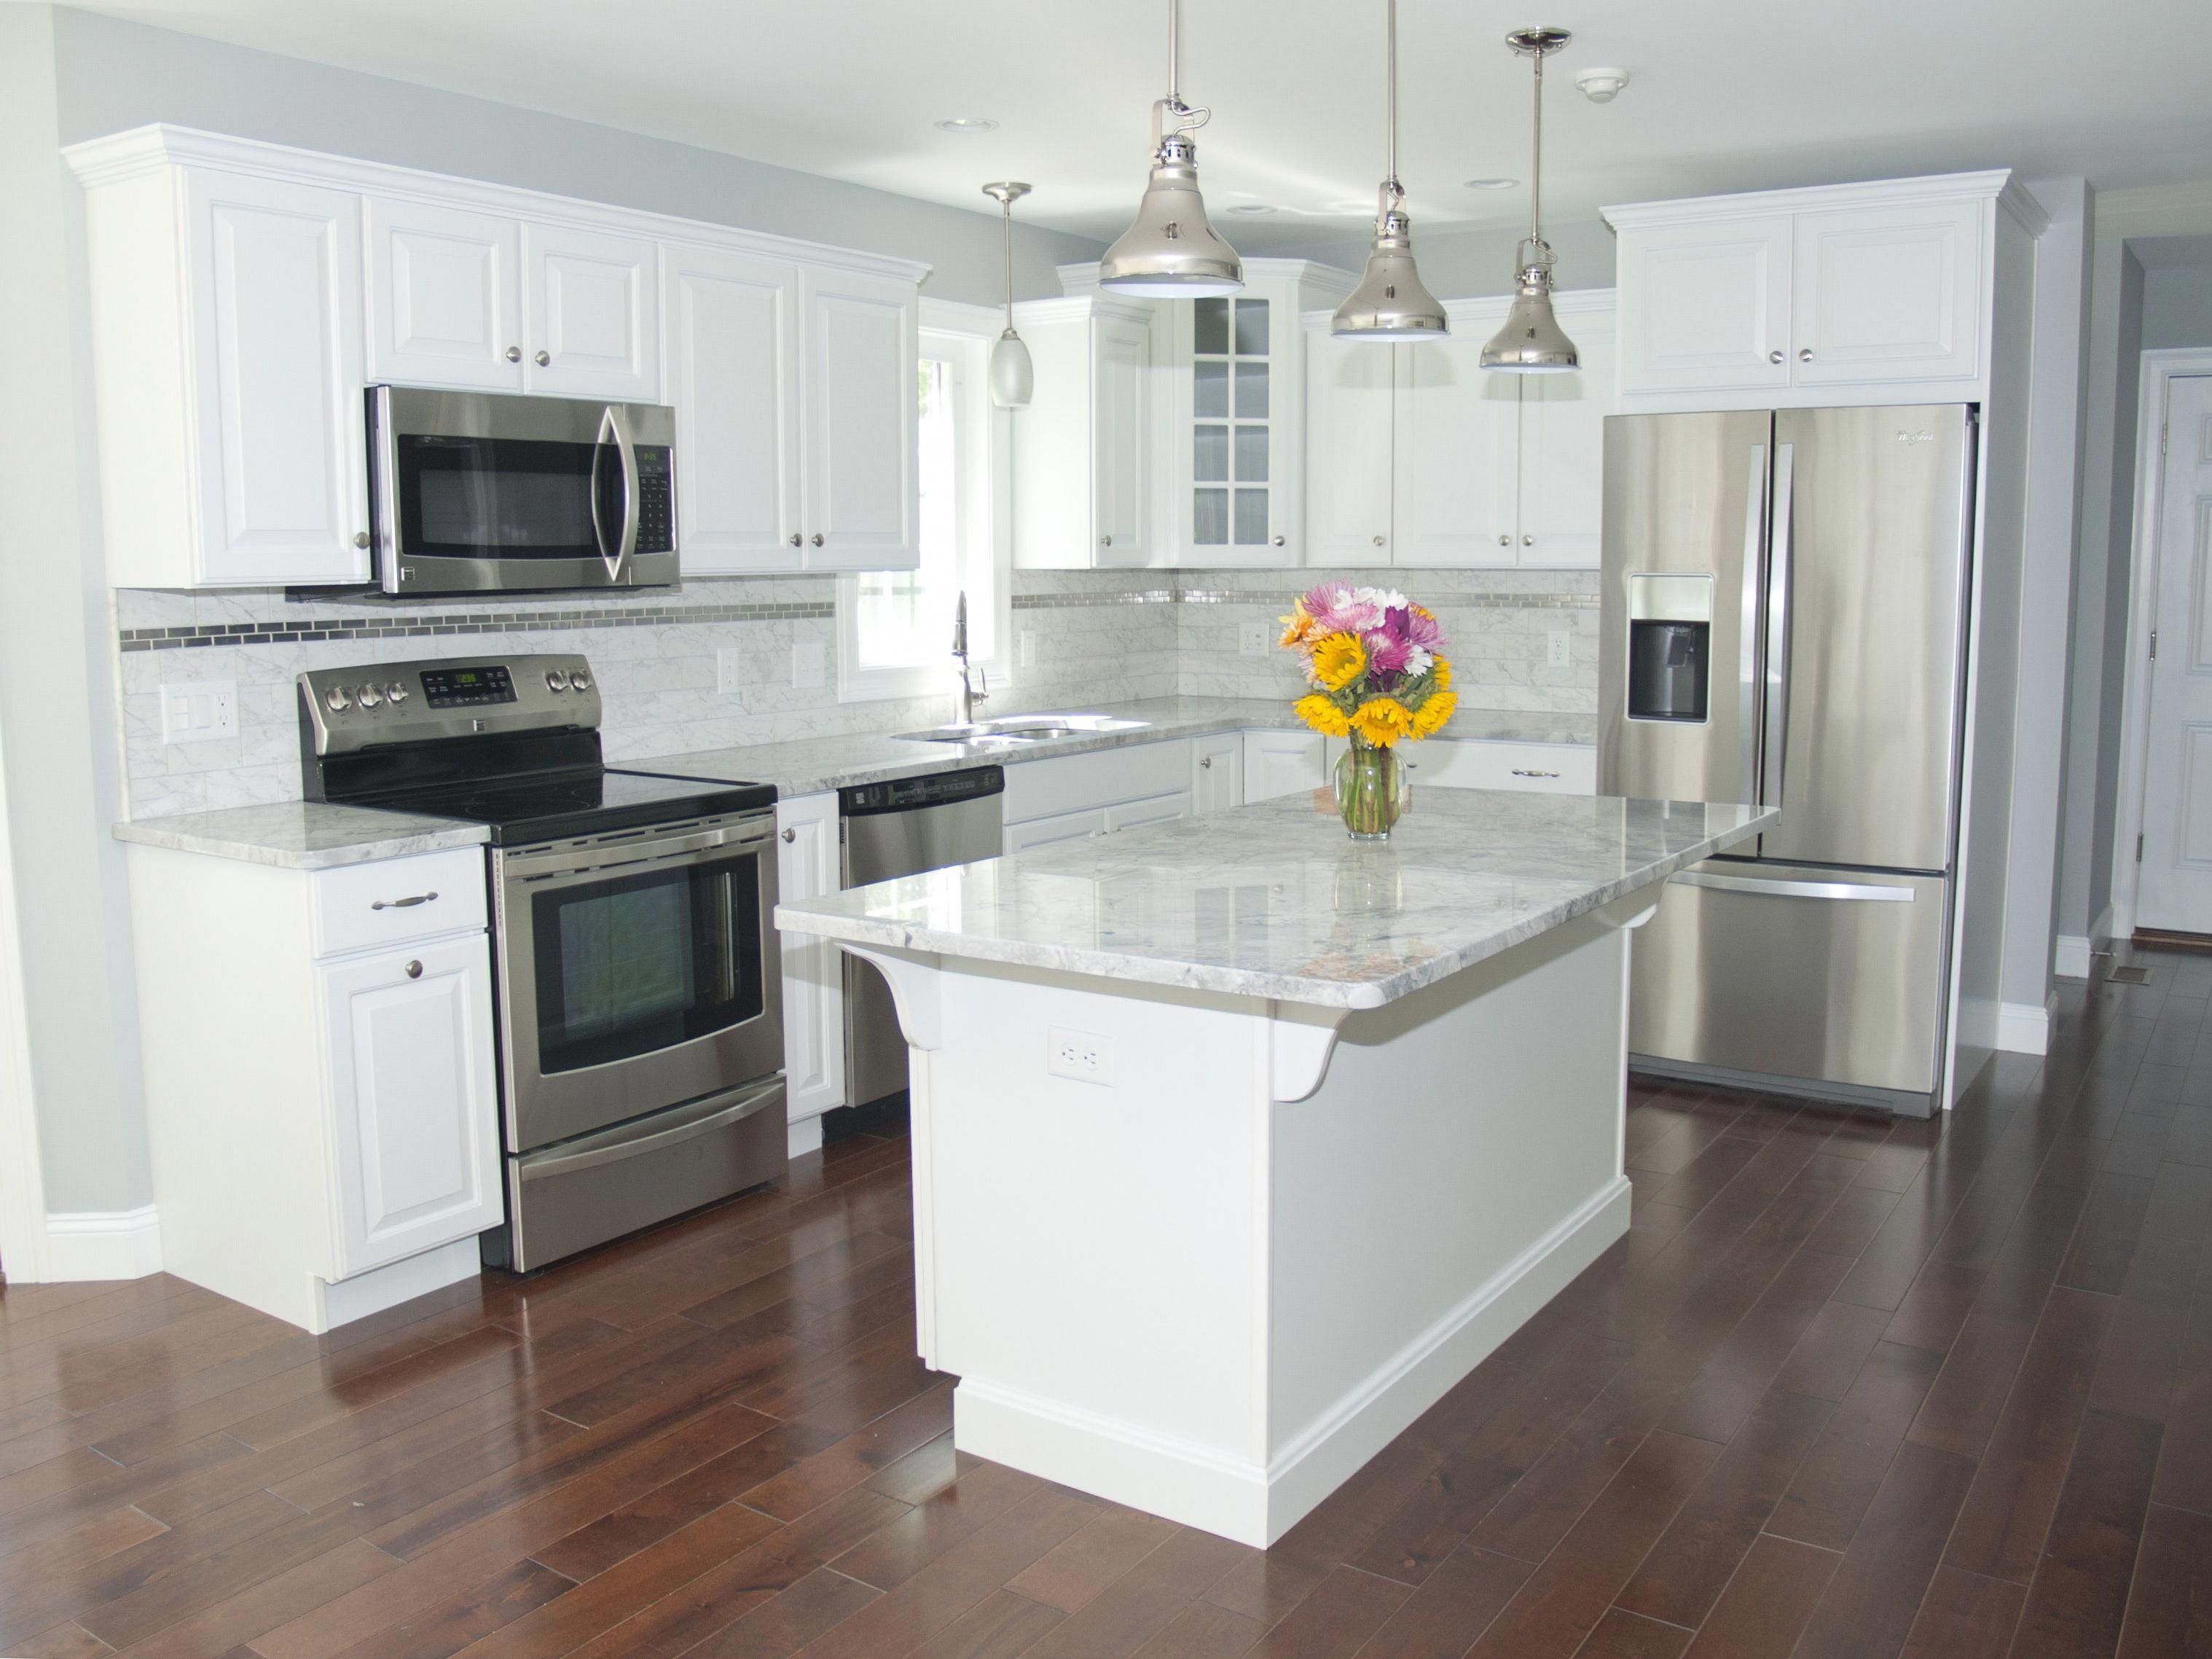 Gorgeous modern kitchen with white cabinets stainless steel